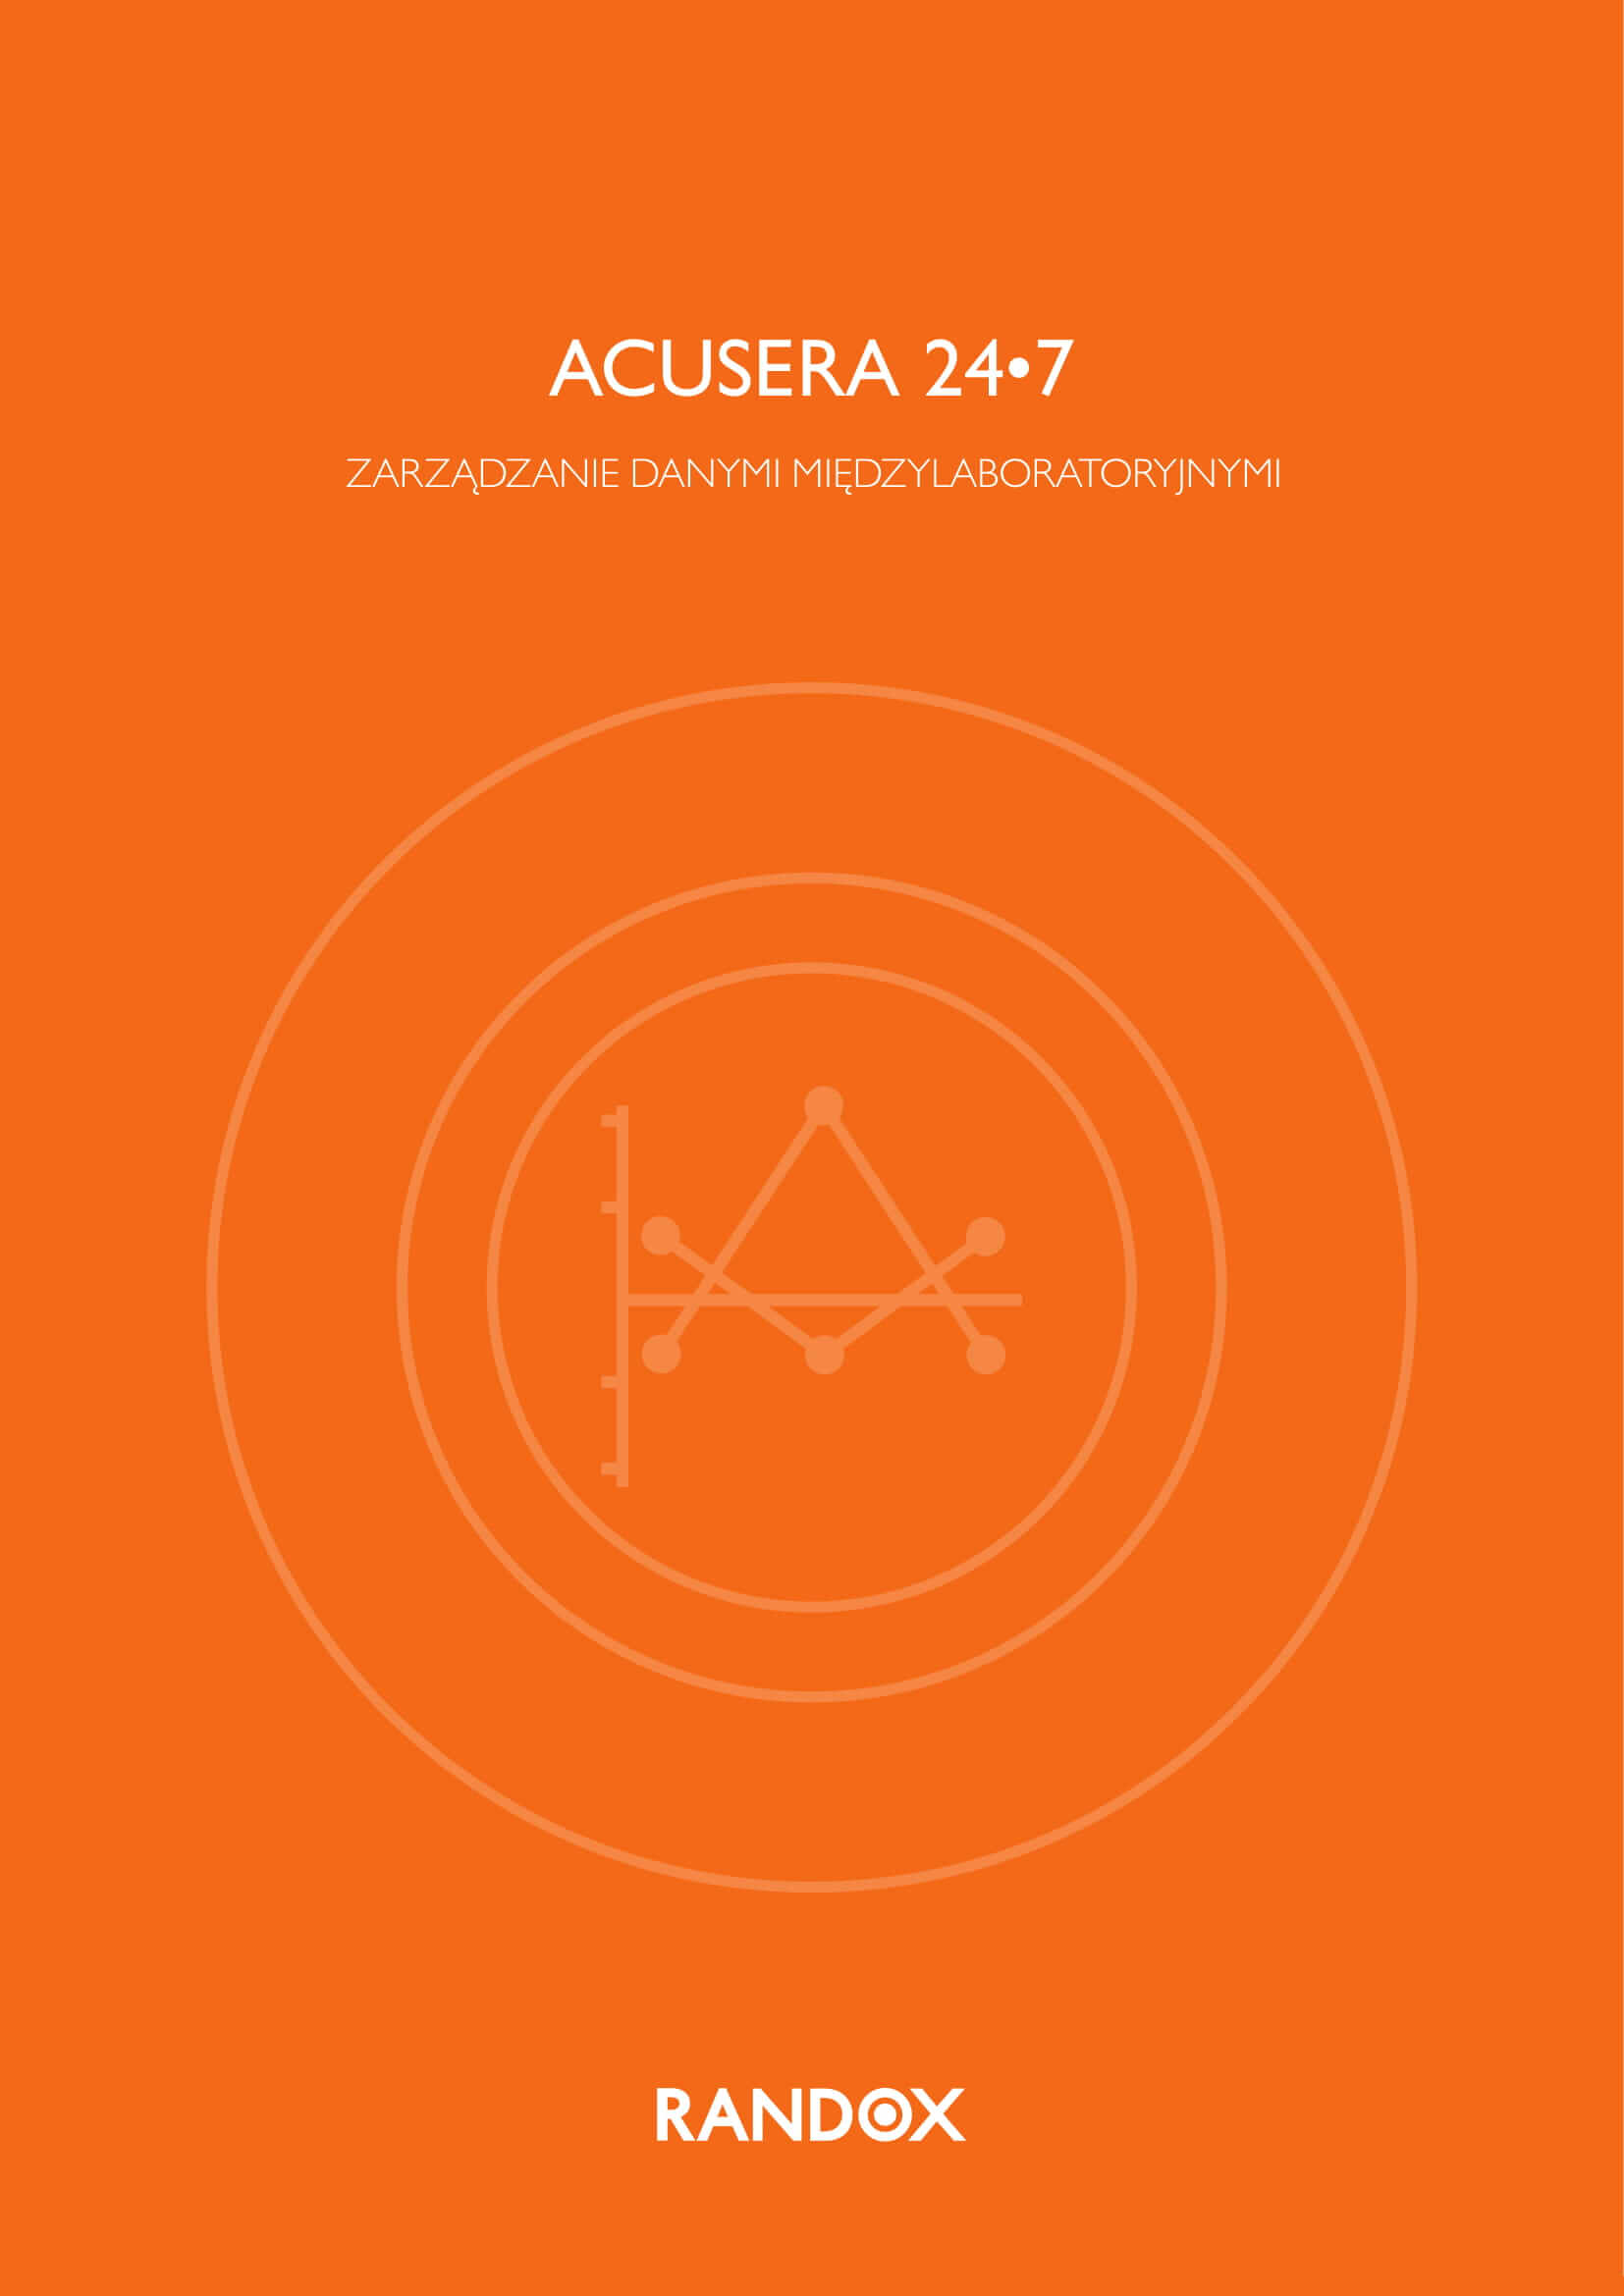 LT244POL - Acusera 24.7 Interlaboratory Data Management (Polish) NOV17